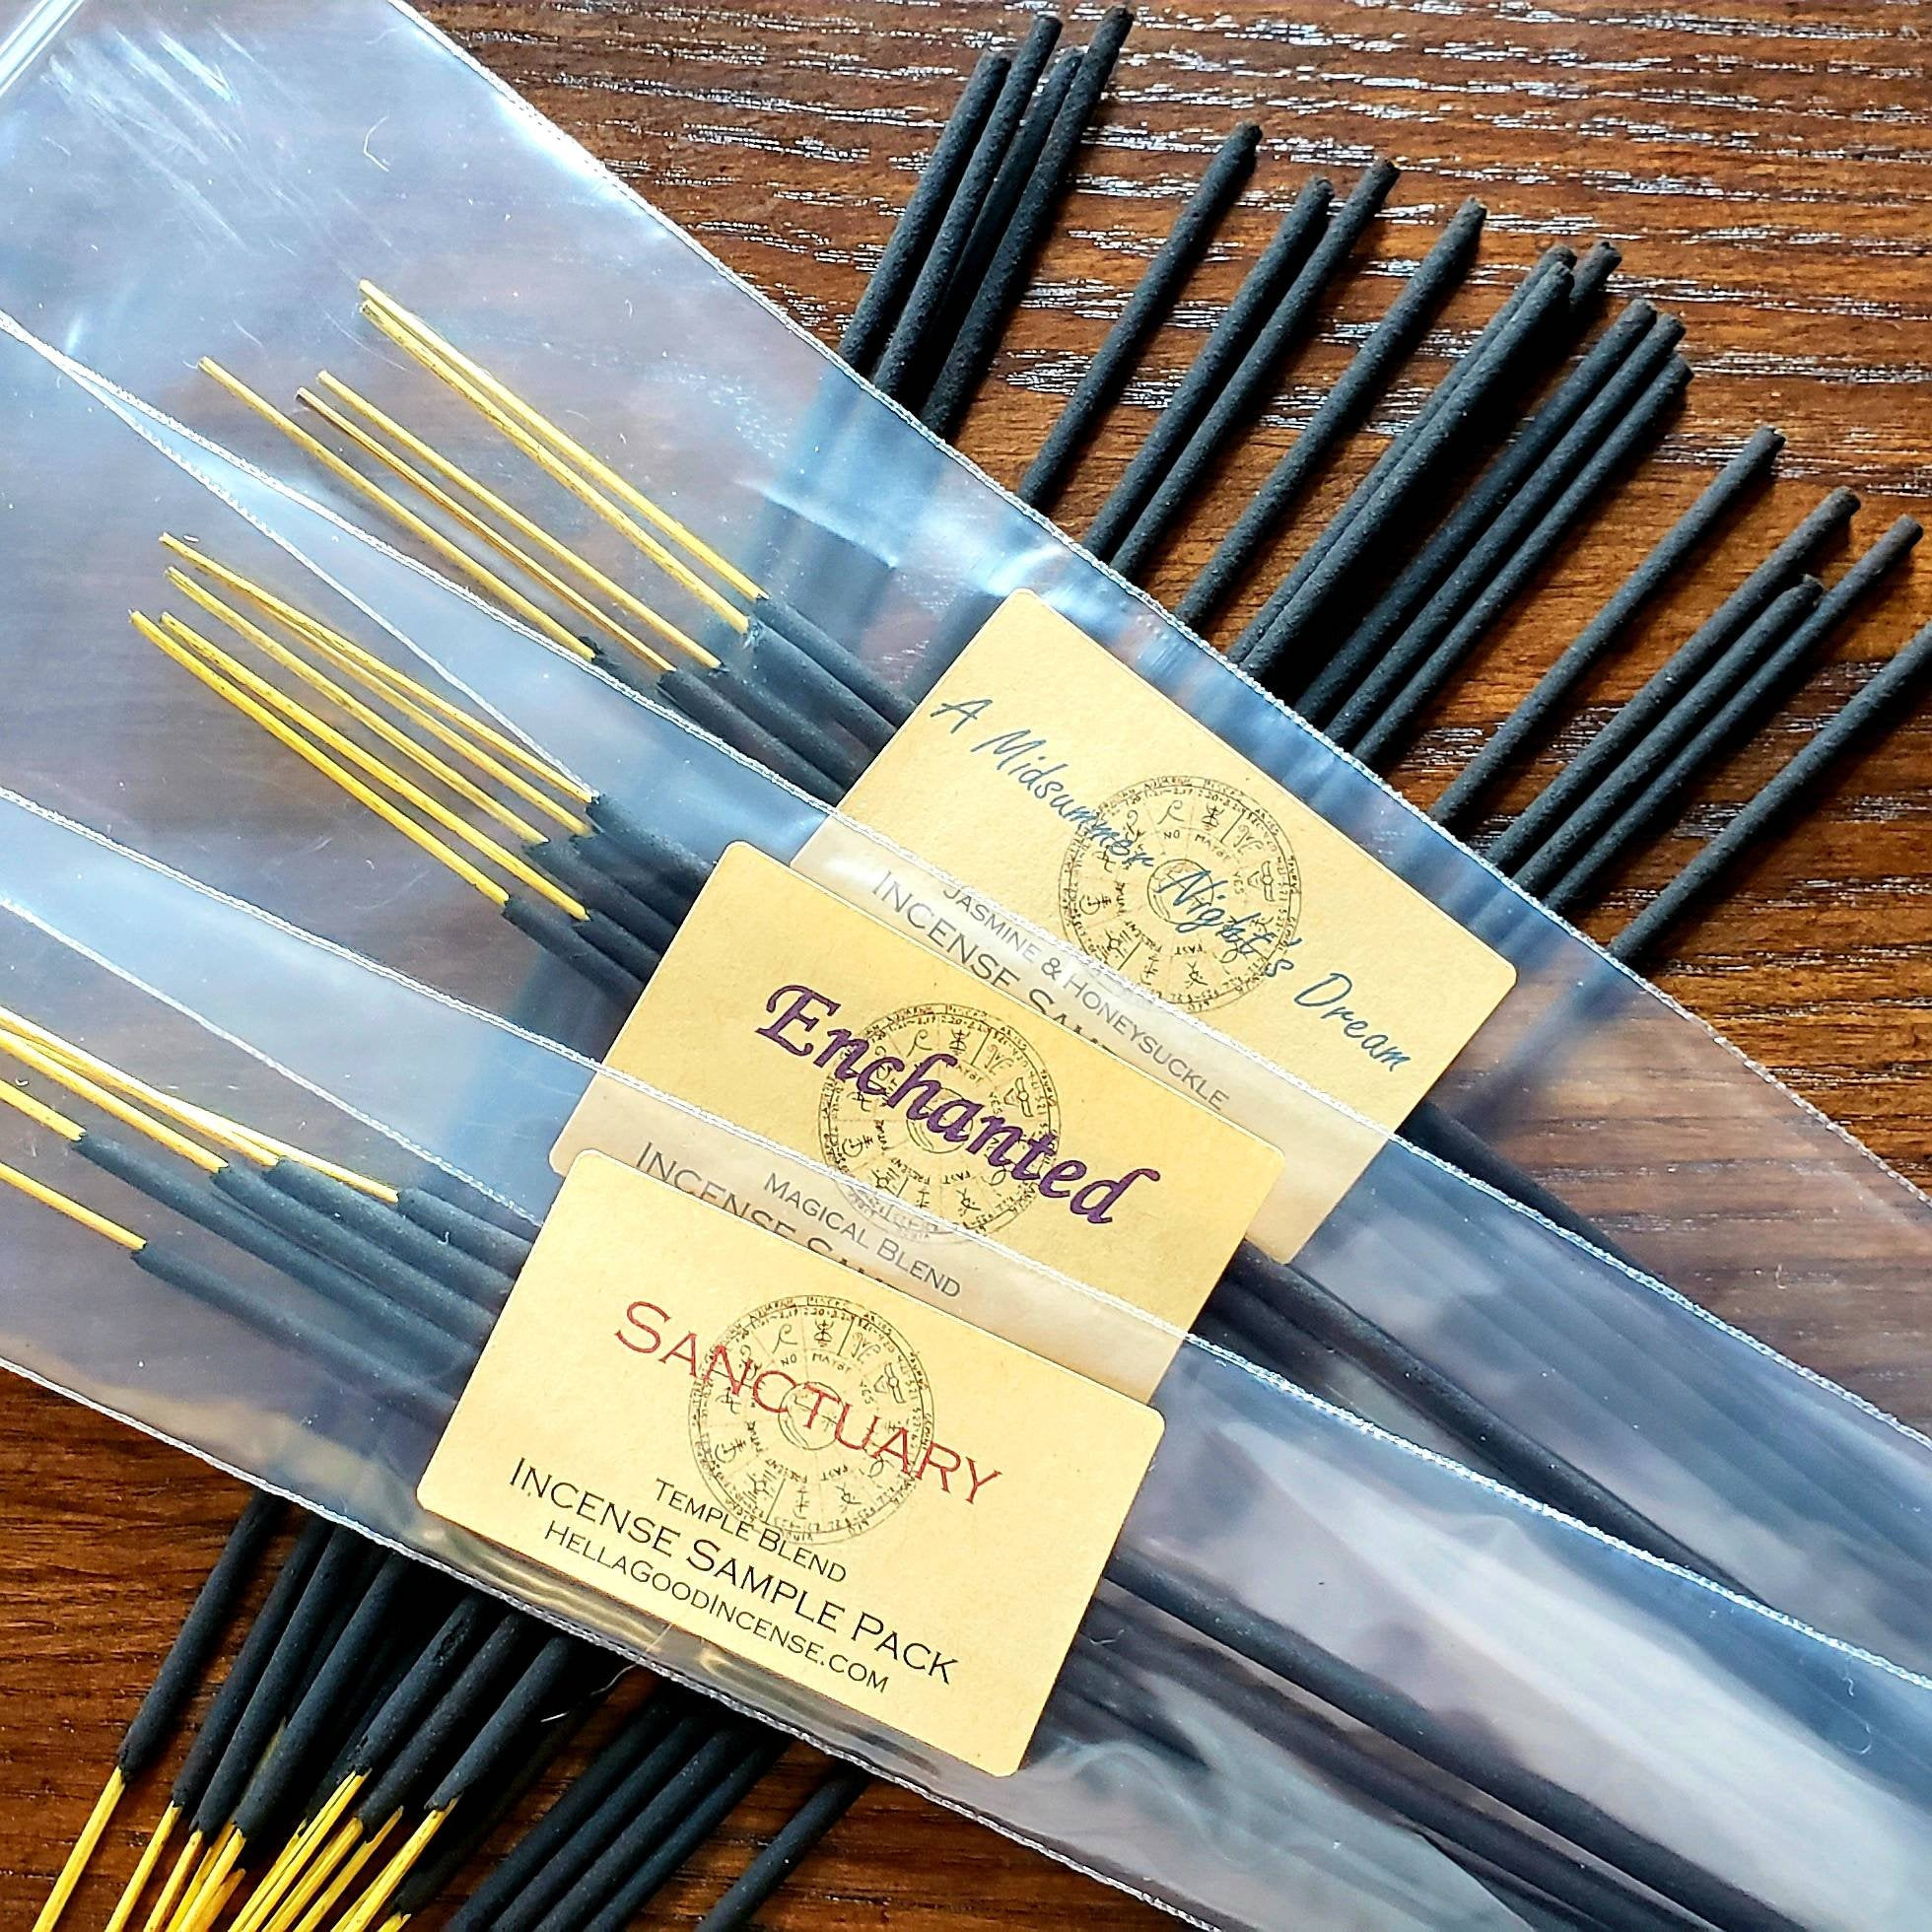 Try Me Sampler Set - Try All 12 Symbolry Incense Blends for 1 Low Price & FREE SHIPPING!